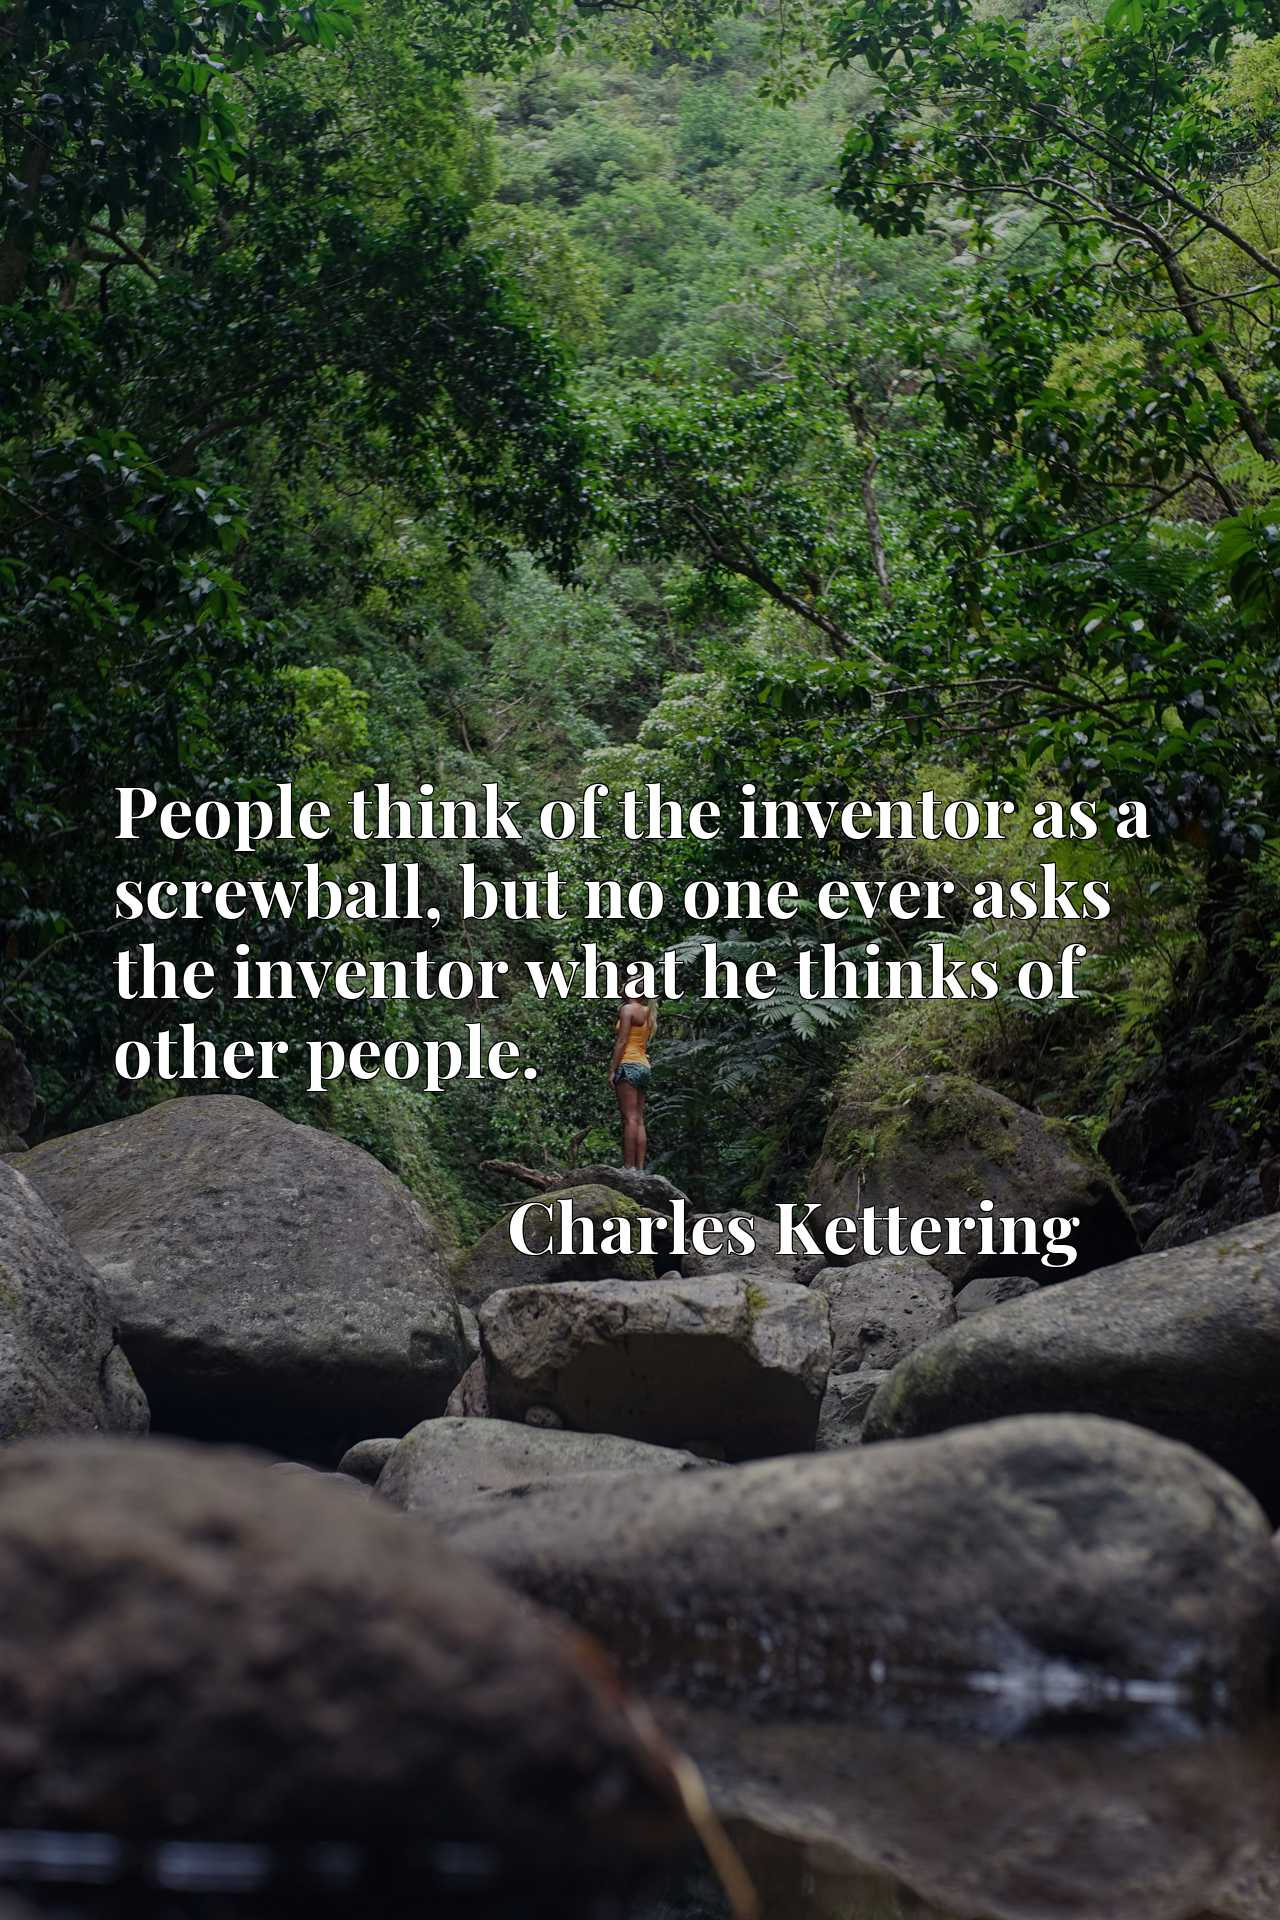 People think of the inventor as a screwball, but no one ever asks the inventor what he thinks of other people.